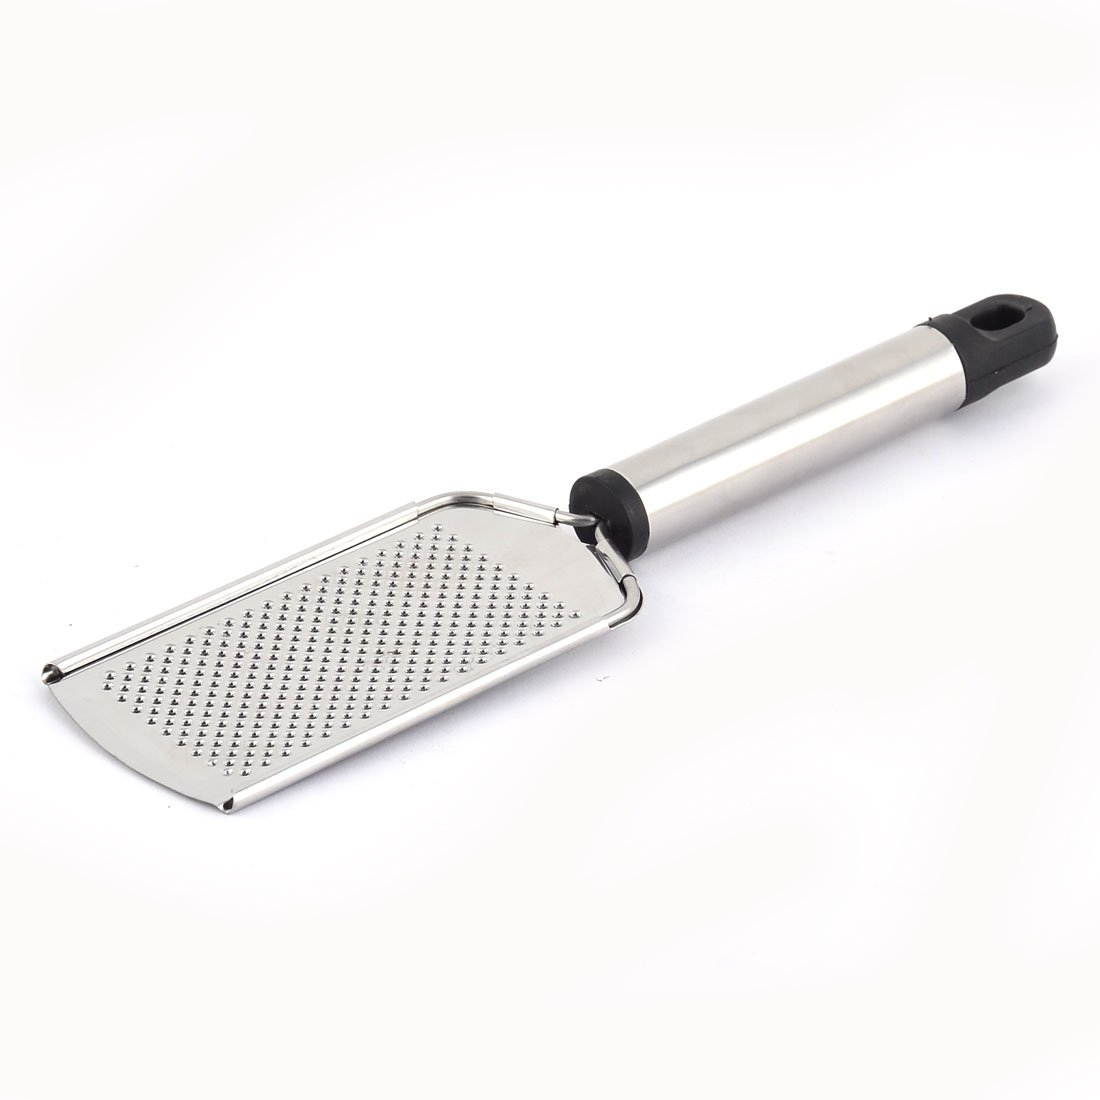 uxcell Stainless Steel Home Round Handle Ginger Patato Cheese Grater Slicer Silver Tone a16121400ux0113